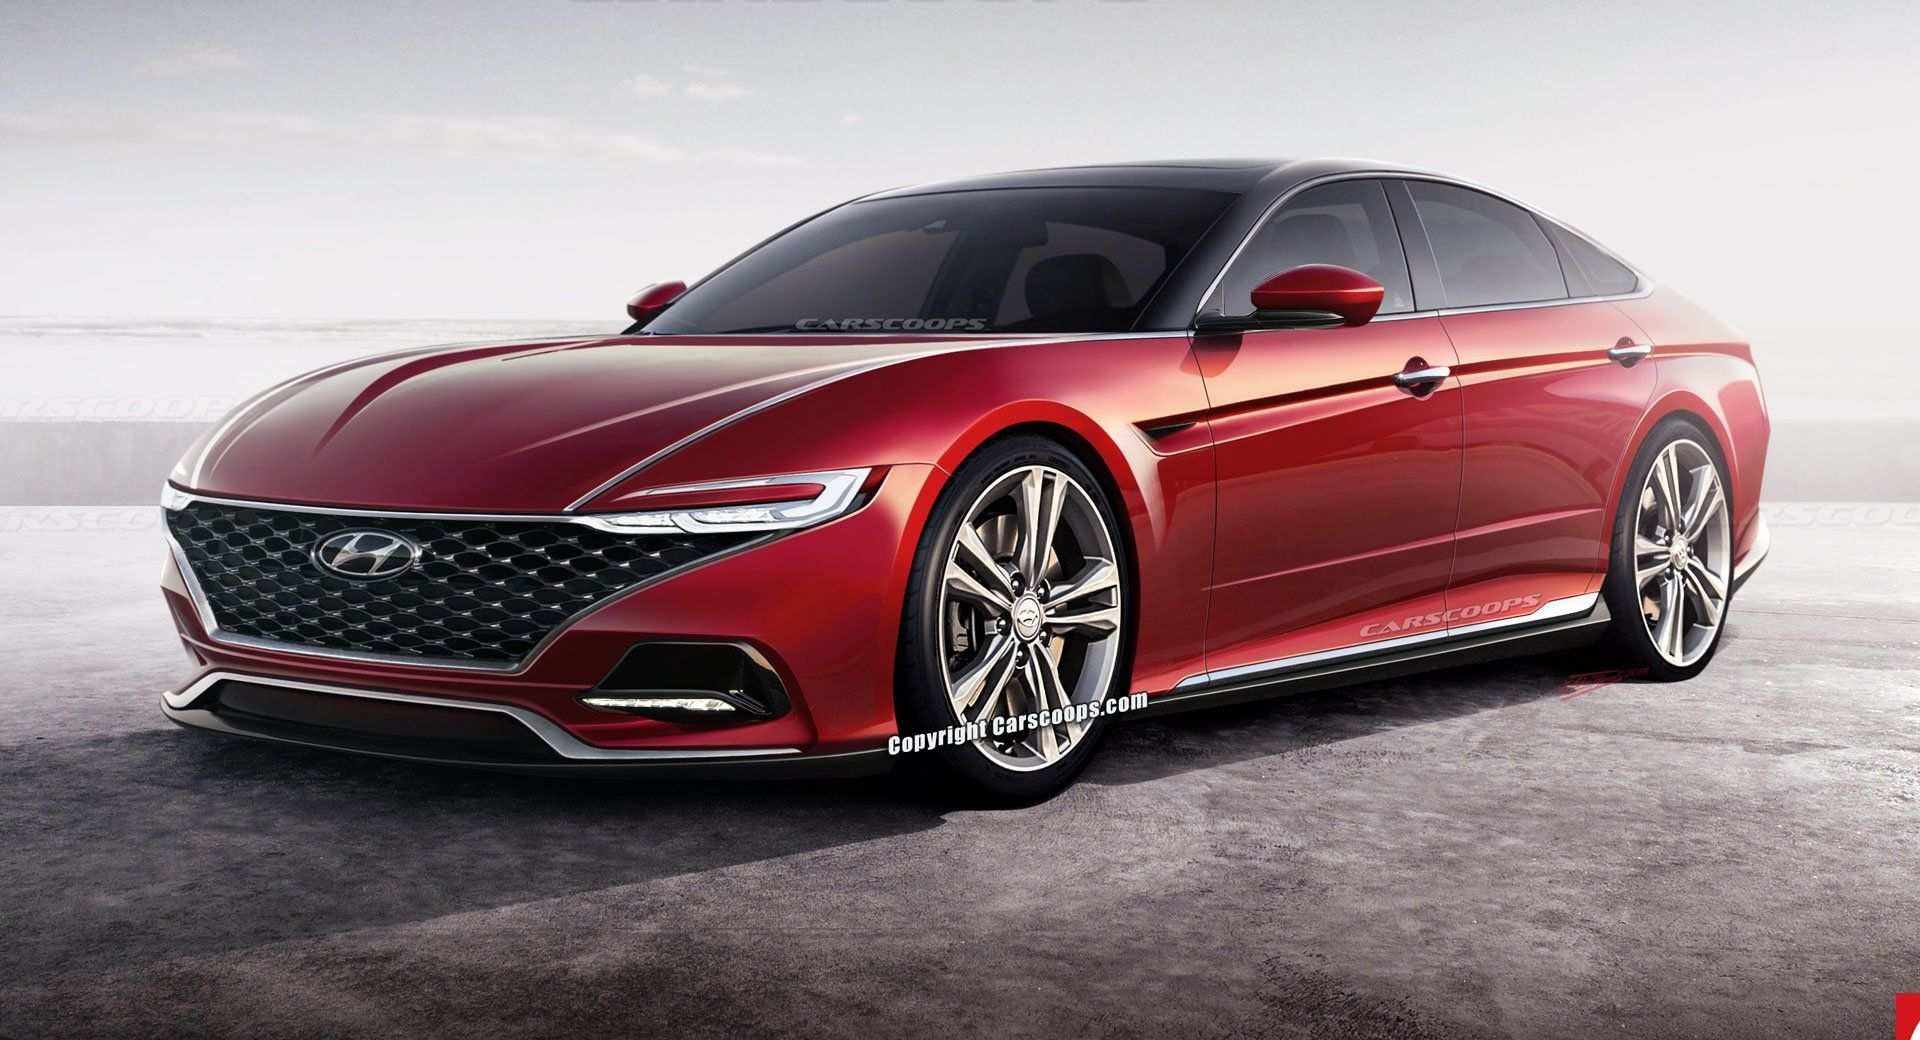 27 All New 2020 Hyundai Sonata Release Date Exterior And Interior